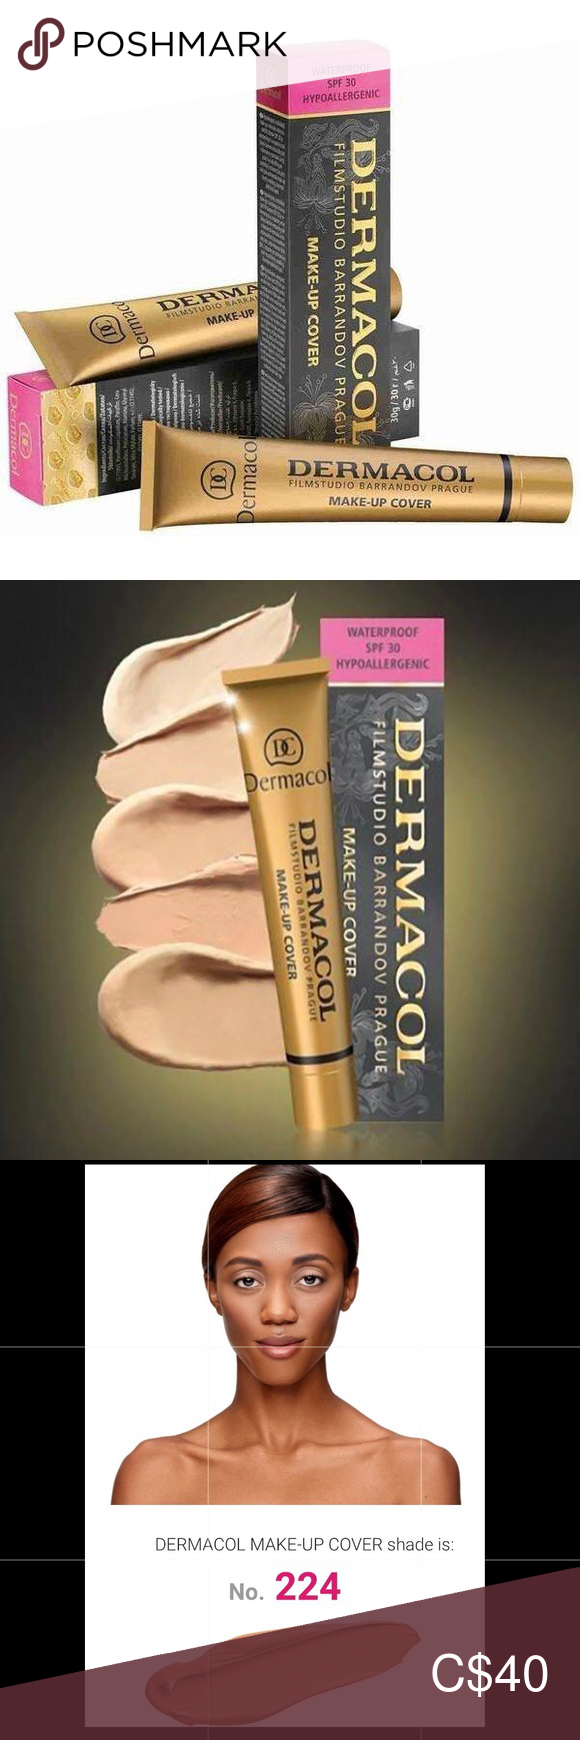 Dermacol Make Up Cover shade 224 This is the World's N•1